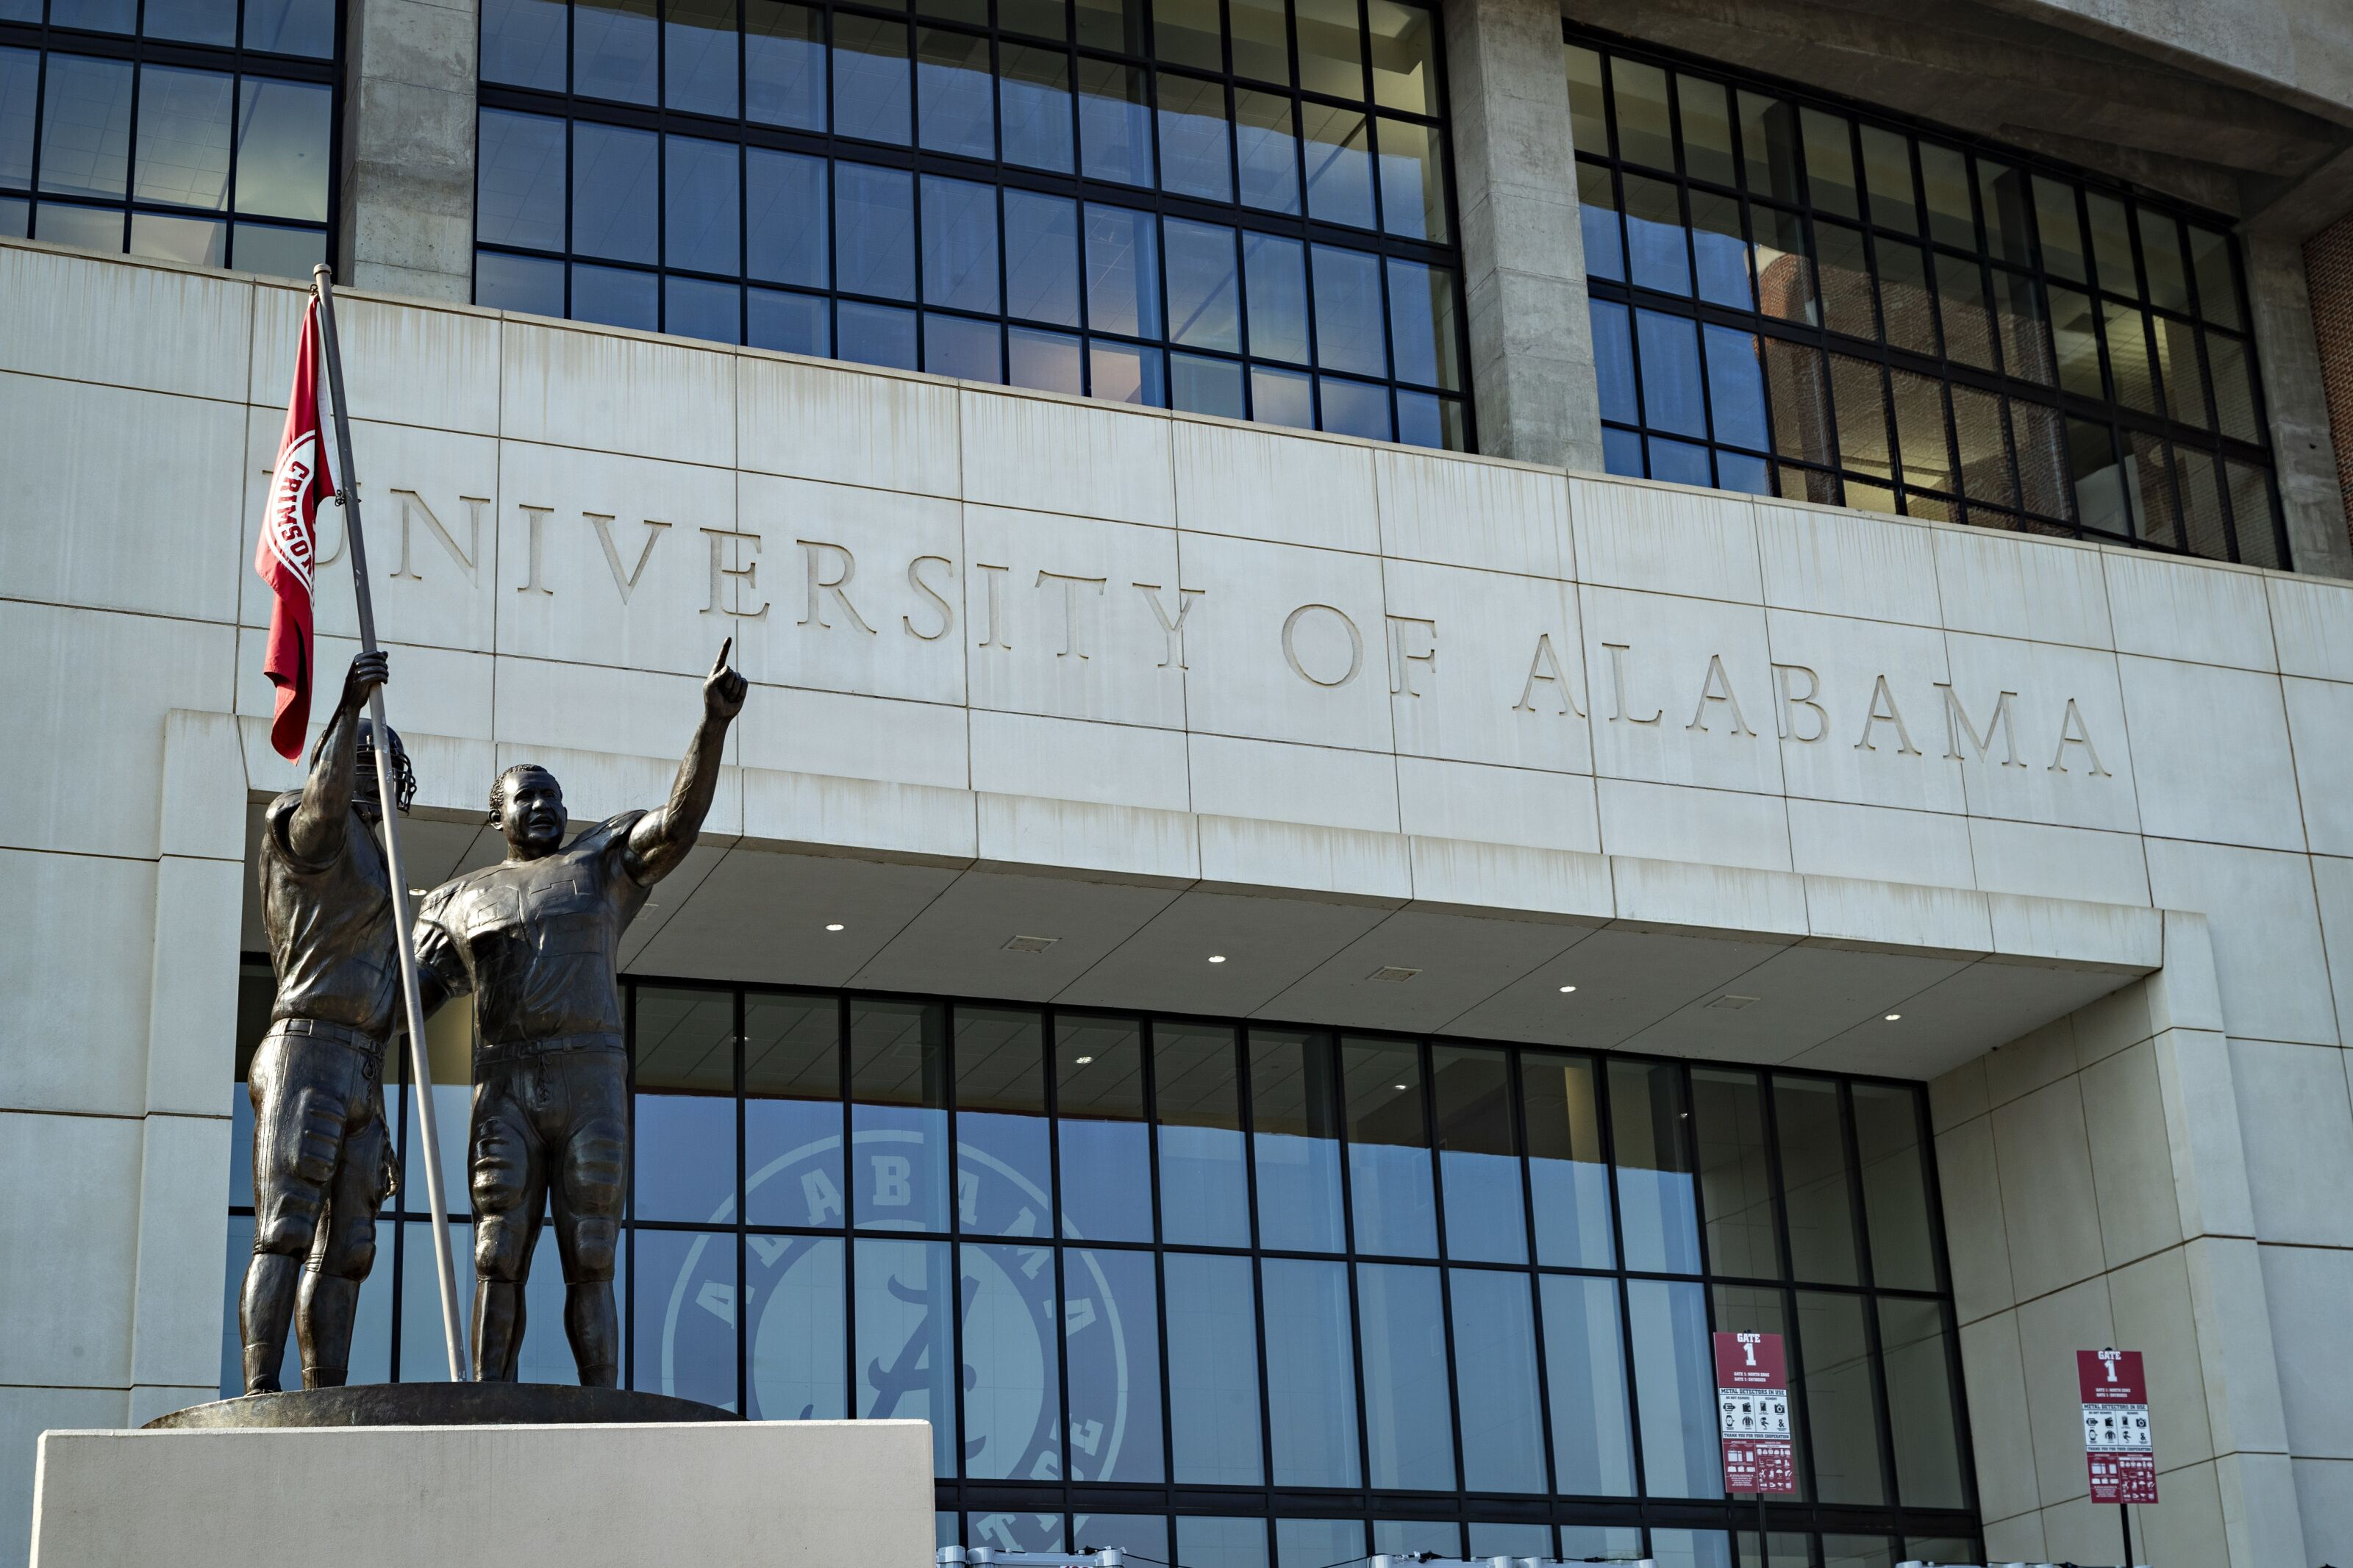 Alabama Football: Notes, thoughts and going-ons in Tuscaloosa